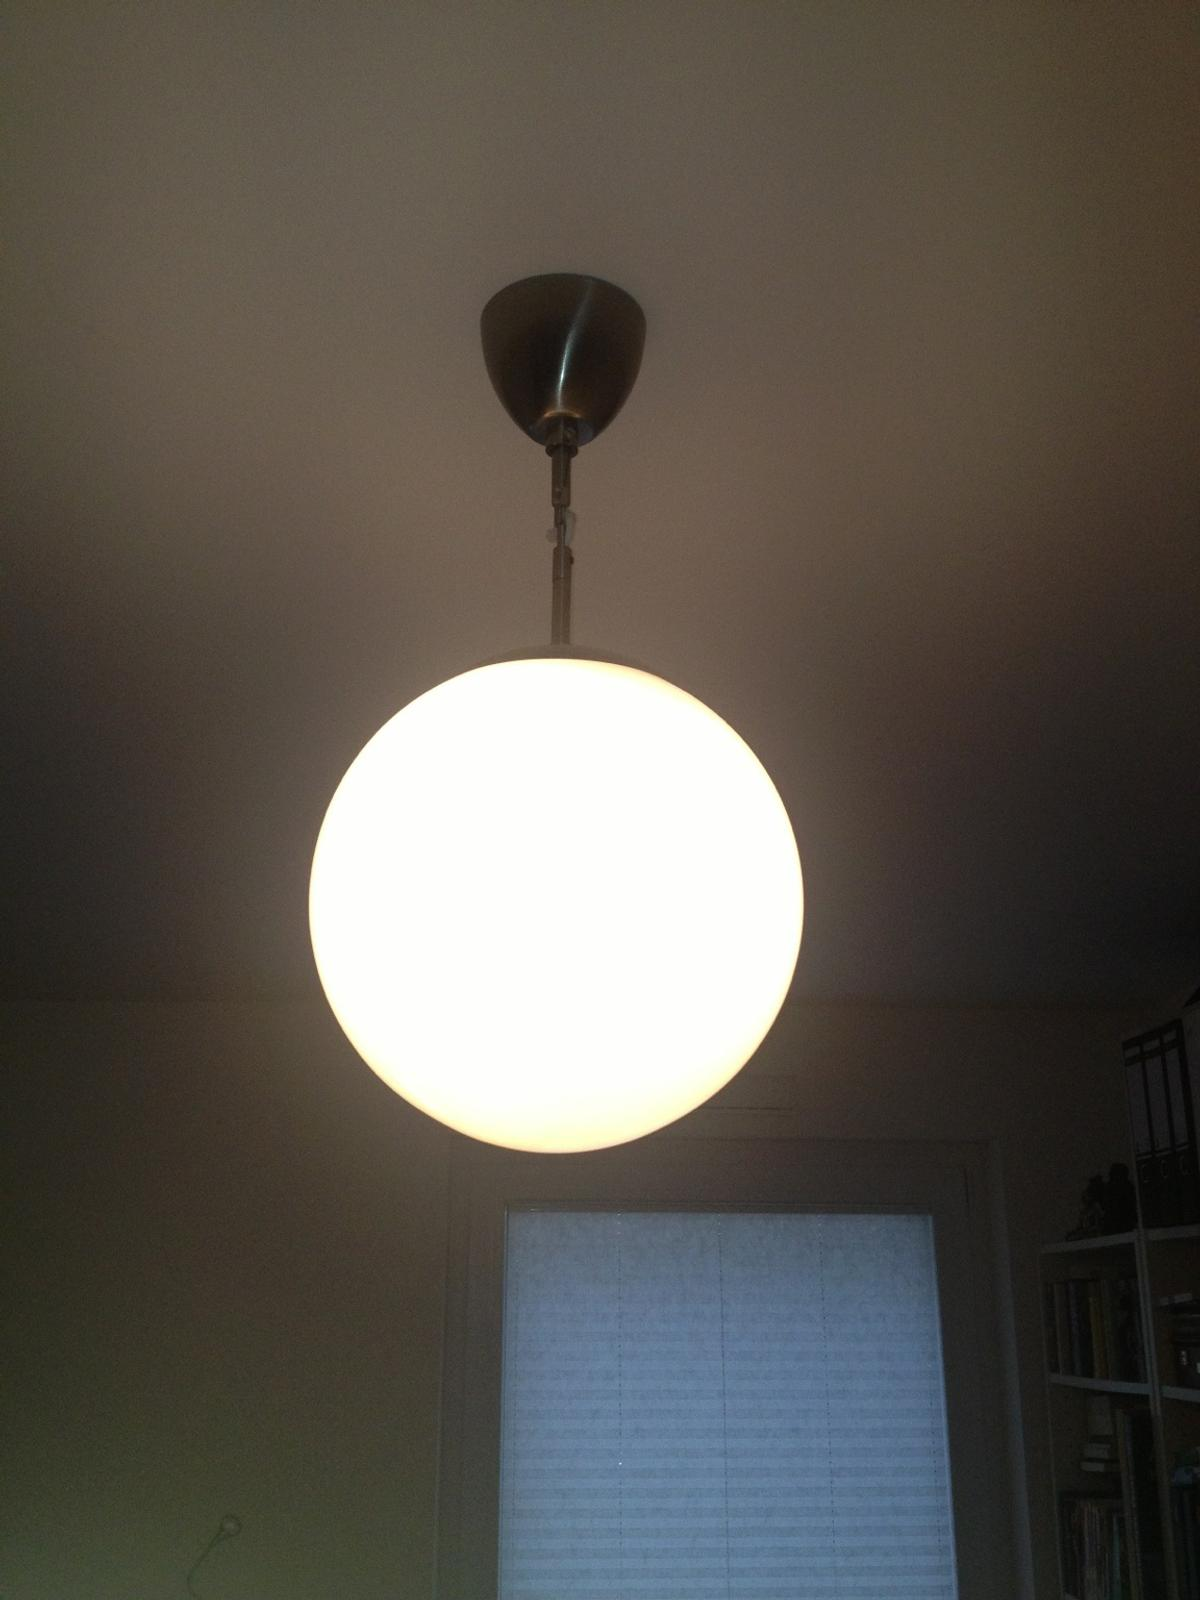 Günstige Lampen Deckenlampe Fado Ikea In 60596 Frankfurt Am Main For €10.00 For Sale | Shpock